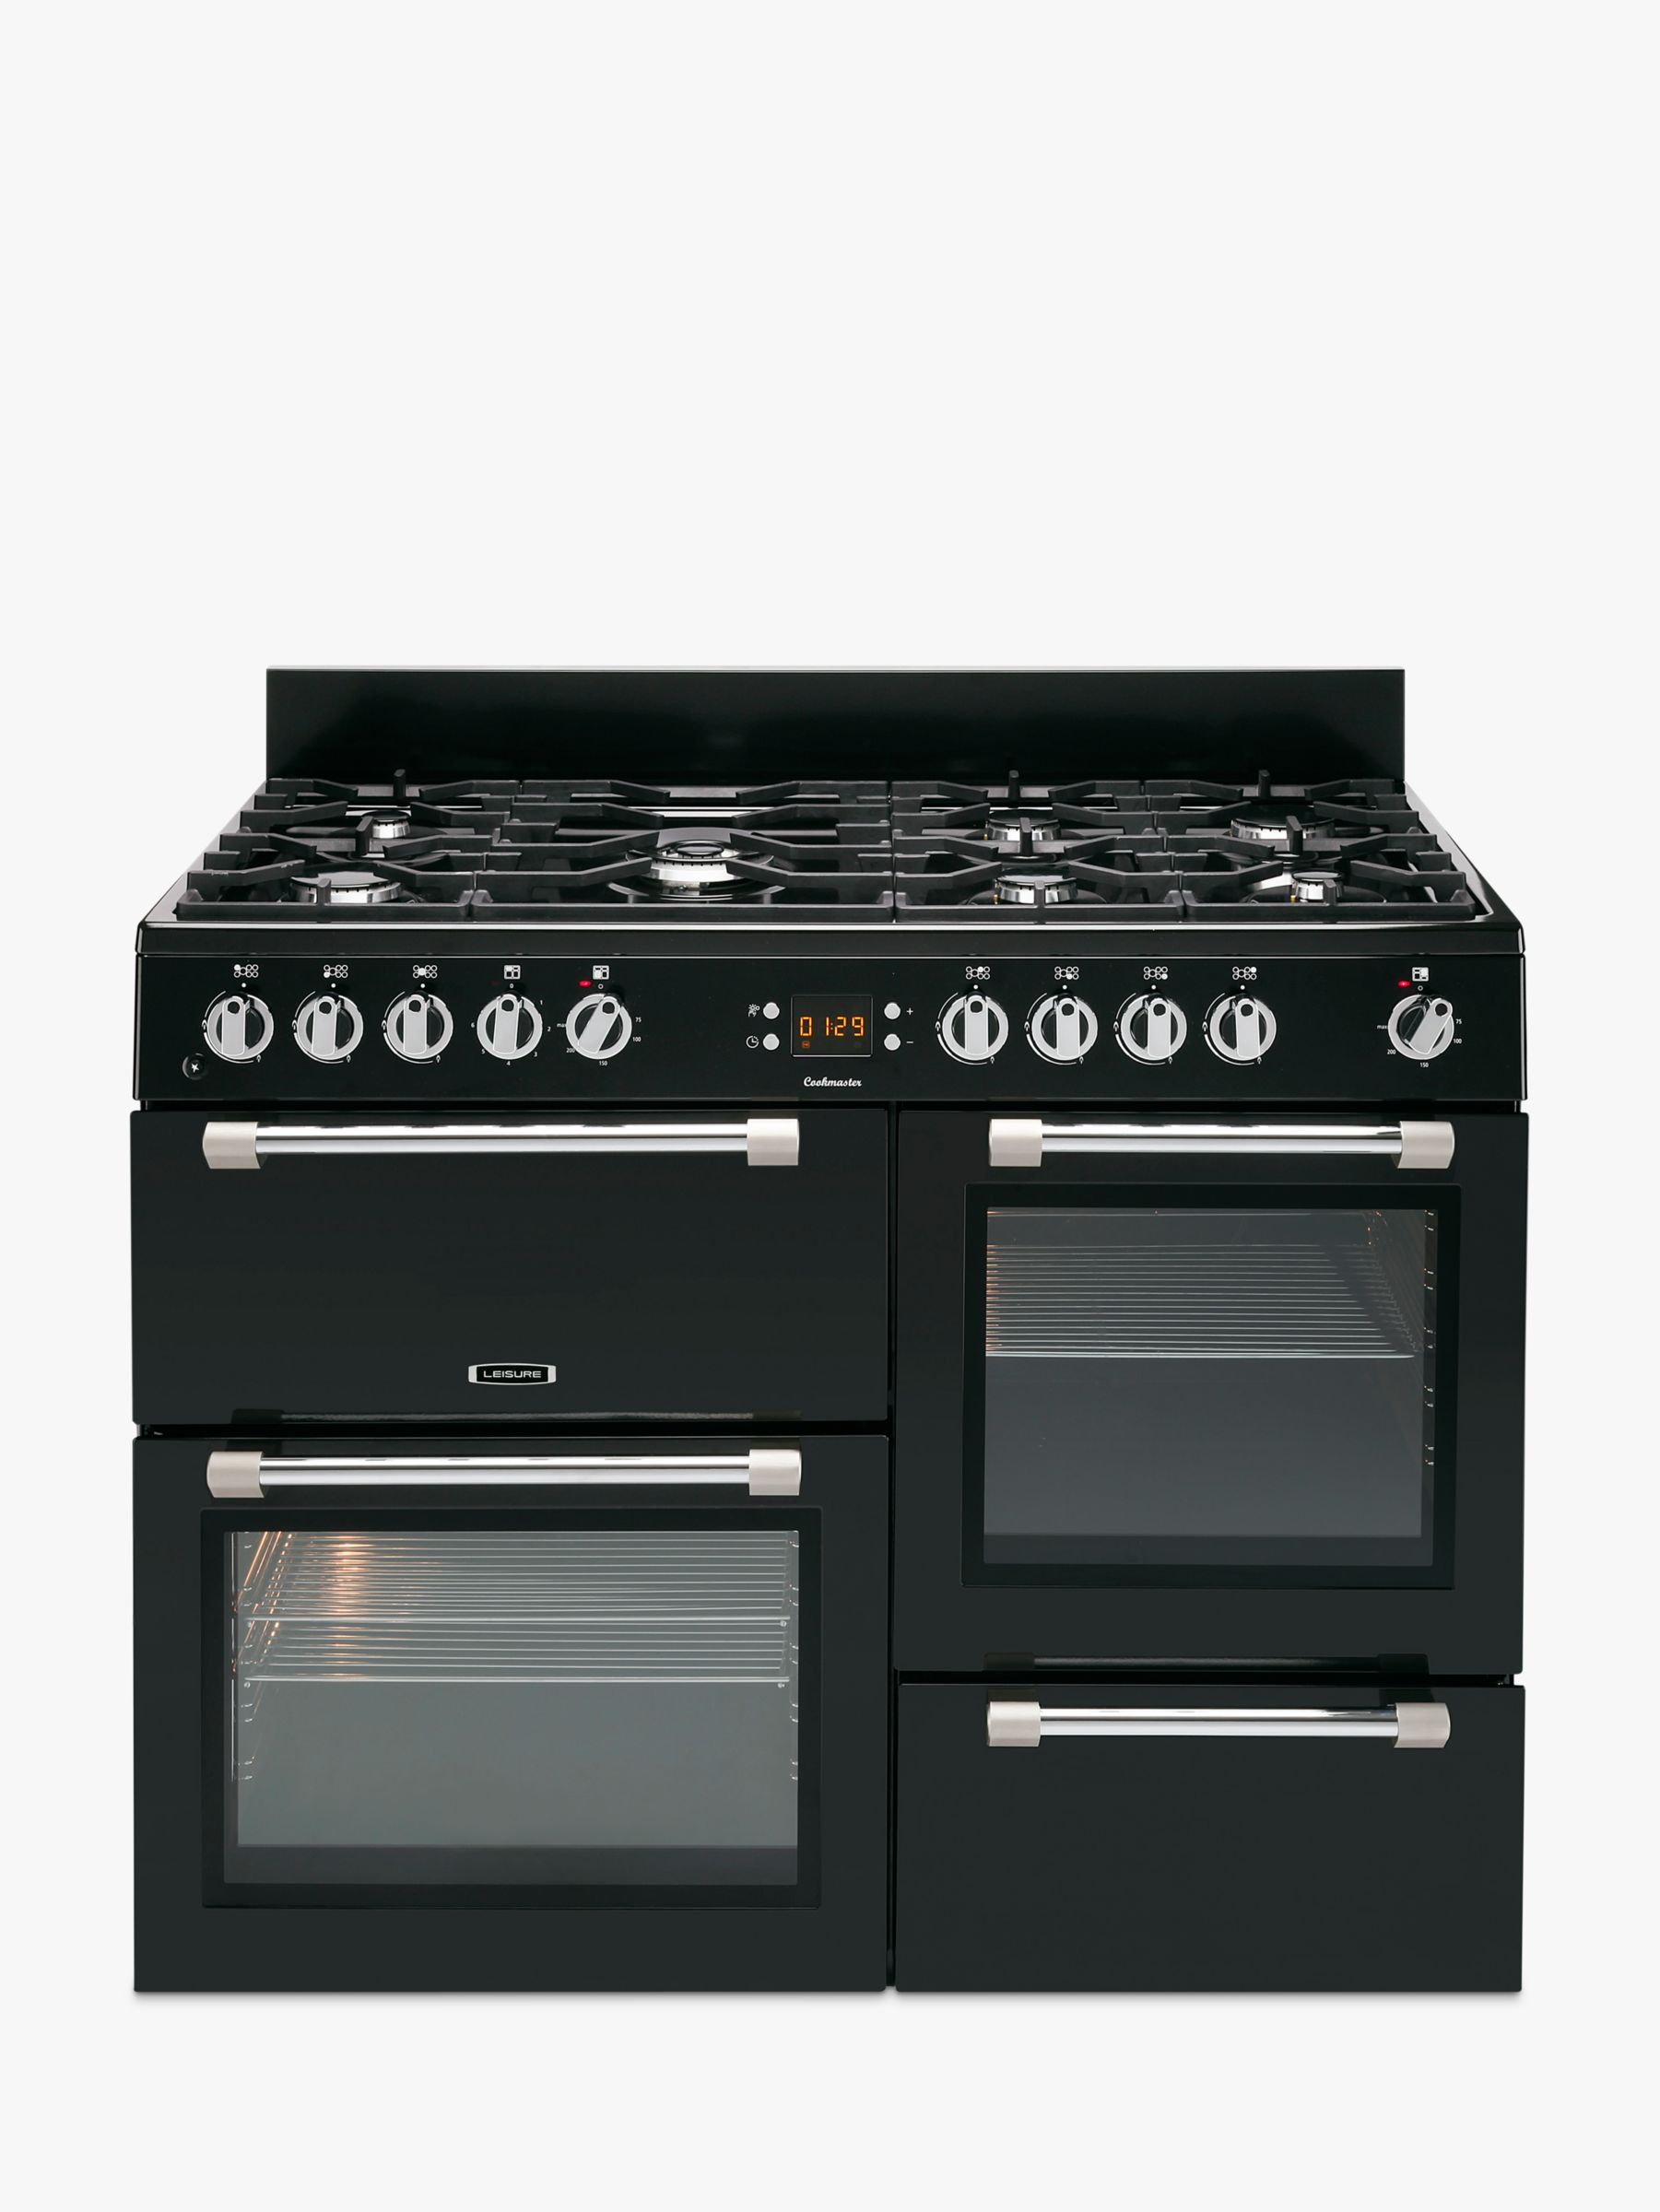 Leisure Leisure CK110F232 Cookmaster Dual Fuel Range Cooker